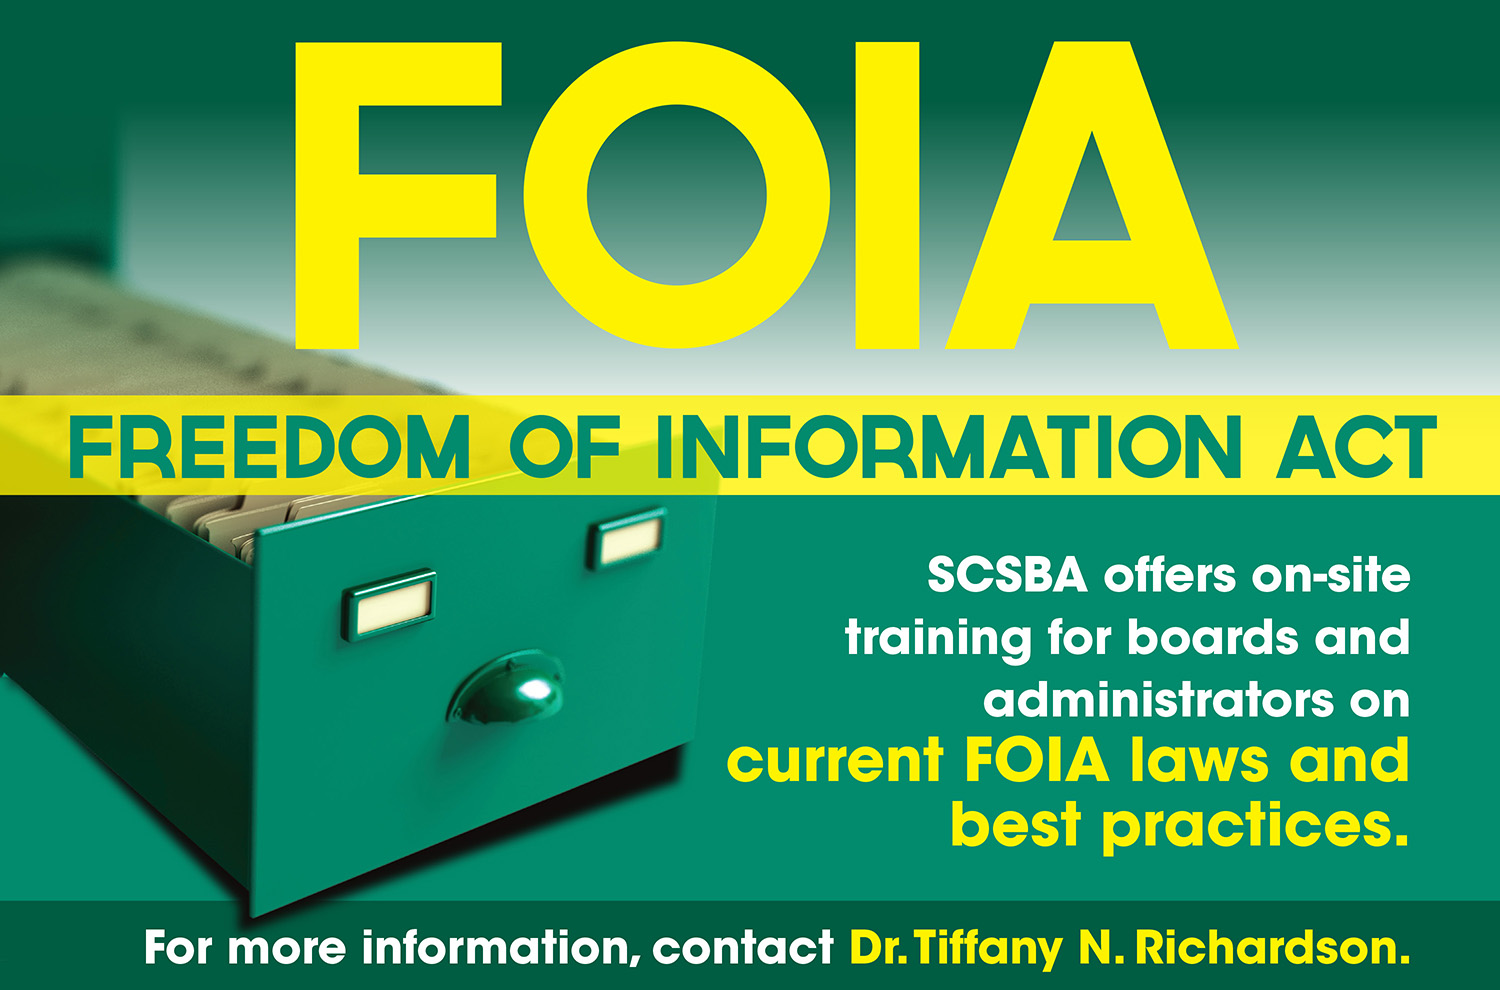 Freedom of Information Act training